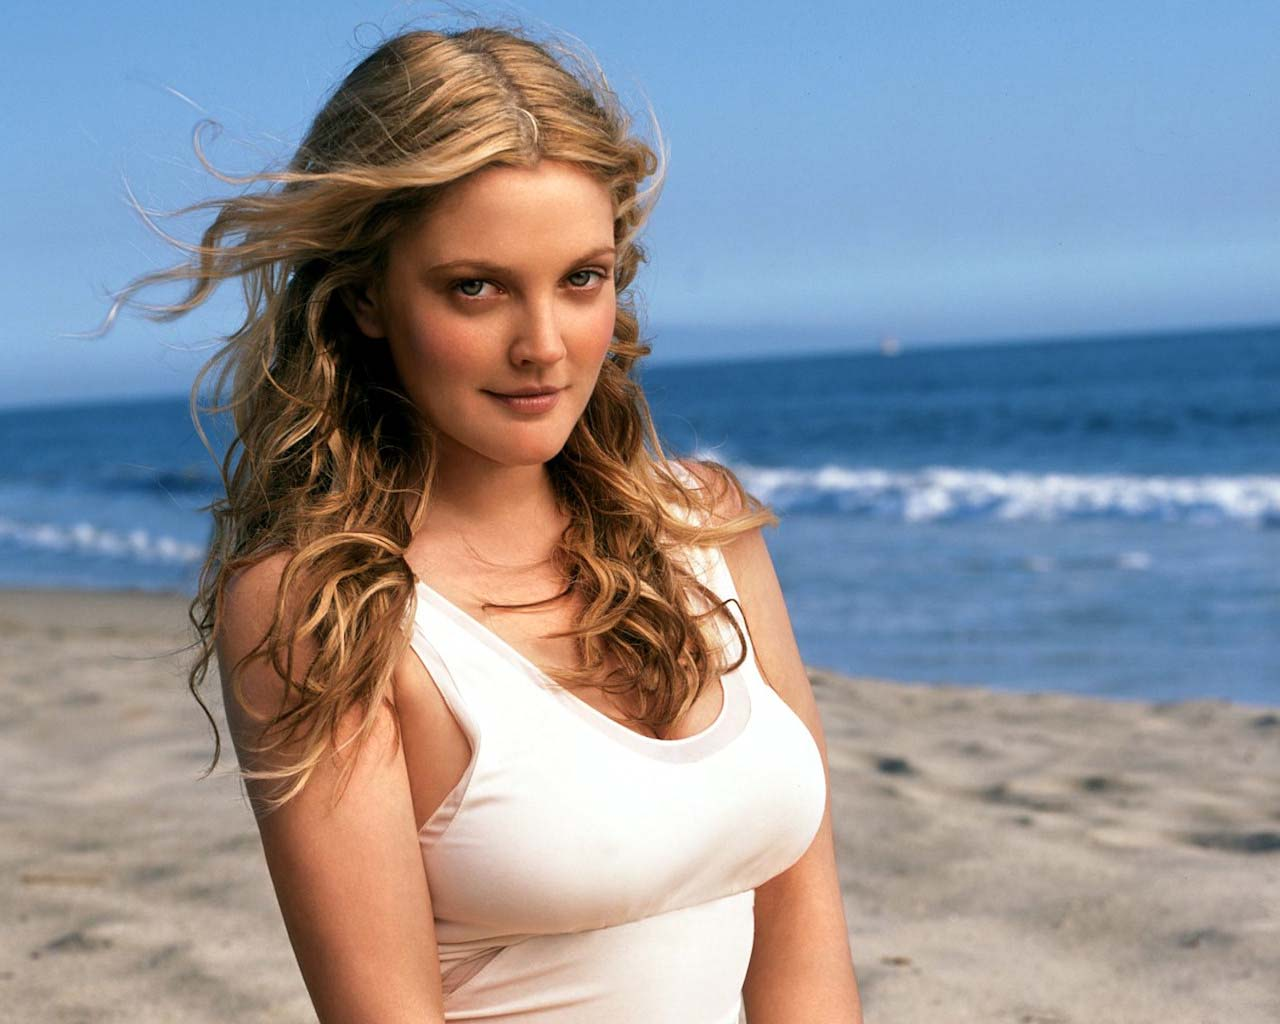 http://4.bp.blogspot.com/-nR6ExlR8Wac/TXUuAWQPZxI/AAAAAAAANco/eMlYyIKQ48I/s1600/Drew-Barrymore-super-Hollywood-Actress-Wallpapers-8.jpg